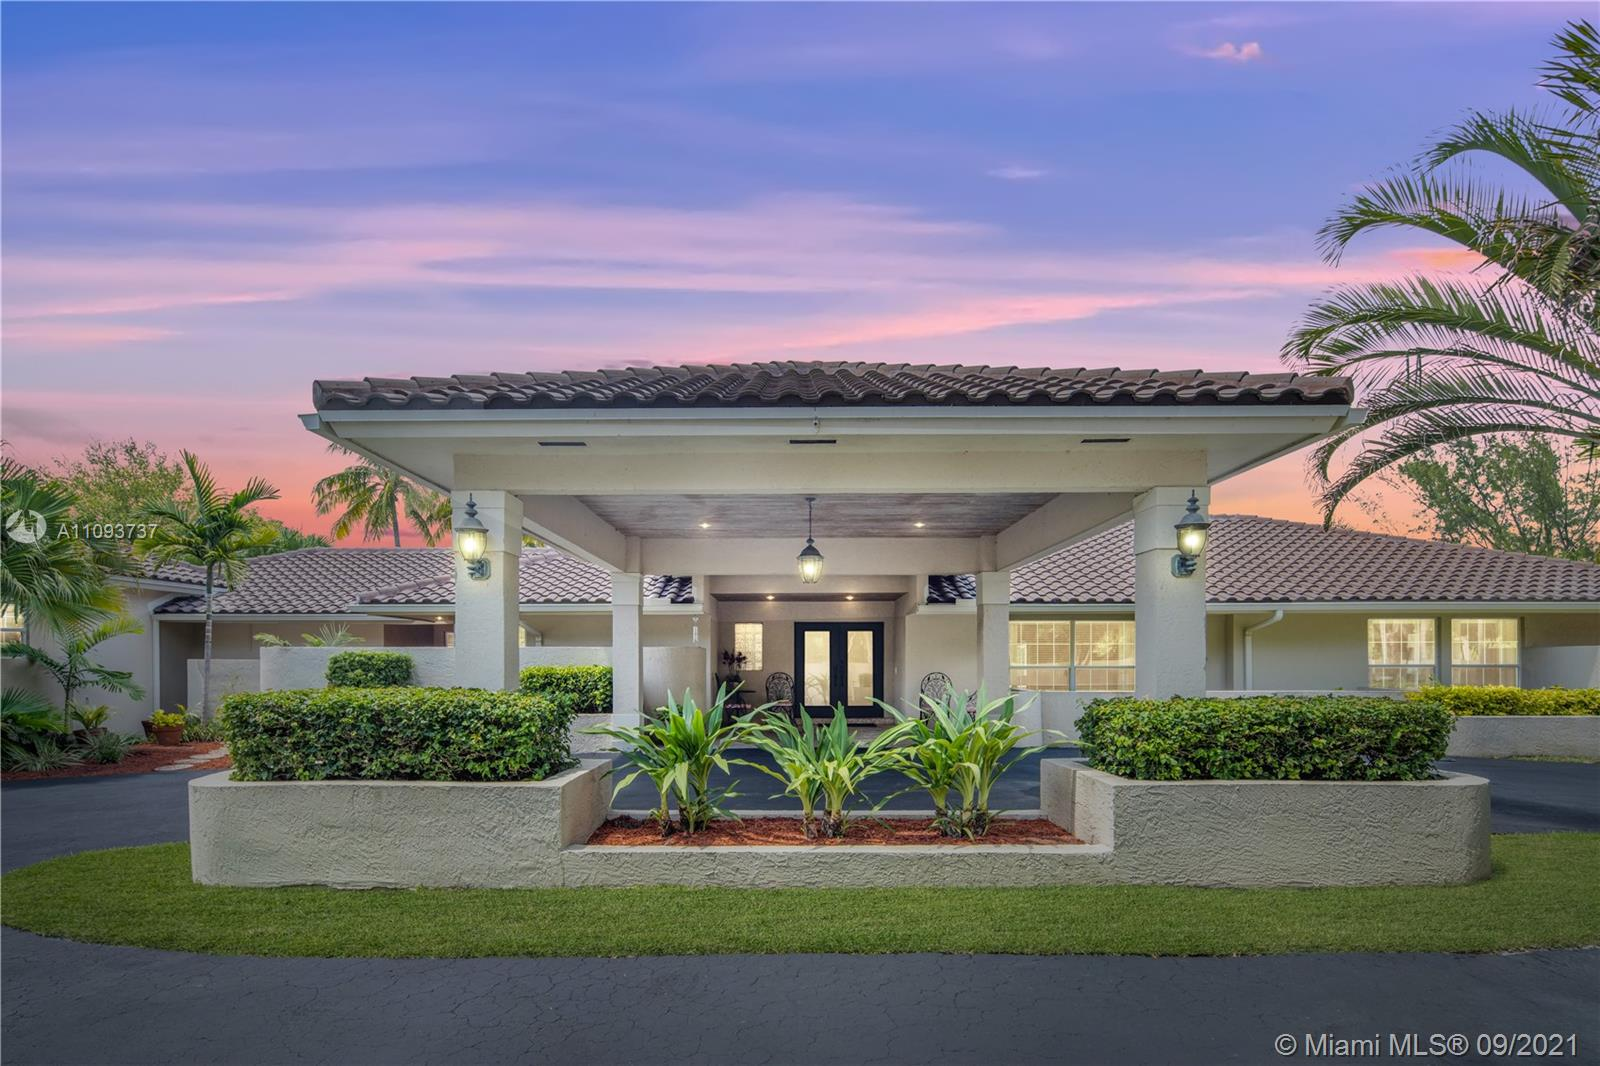 Welcome to Palmetto Bay! Private schools neaby. This 6,000 sqft estate has 5 bedrooms and 5 bathrooms, on approx. 38,000 sqft gated lot. New barrel tile roof installed in 2019. Backyard has saltwater pool and spa, gazebo with kitchen, and full bath. Spiral stairs leads to rooftop sundeck. Interior has marble flooring, large game room, sunroom, vaulted ceilings, 2 family rooms, 2 dining rooms, and stone fireplace. Kitchen opens to the family room and has island, bar, and granite countertops. The master suite has direct pool access, a private lanai patio, and hardwood flooring. The master bath has a jet tub, his and hers marble sinks, and lots of natural light. Enclosed outdoor terraces off bedrooms. Laundry room has backyard access. Extra parking for boat and toys. No flood insurance rqmts.